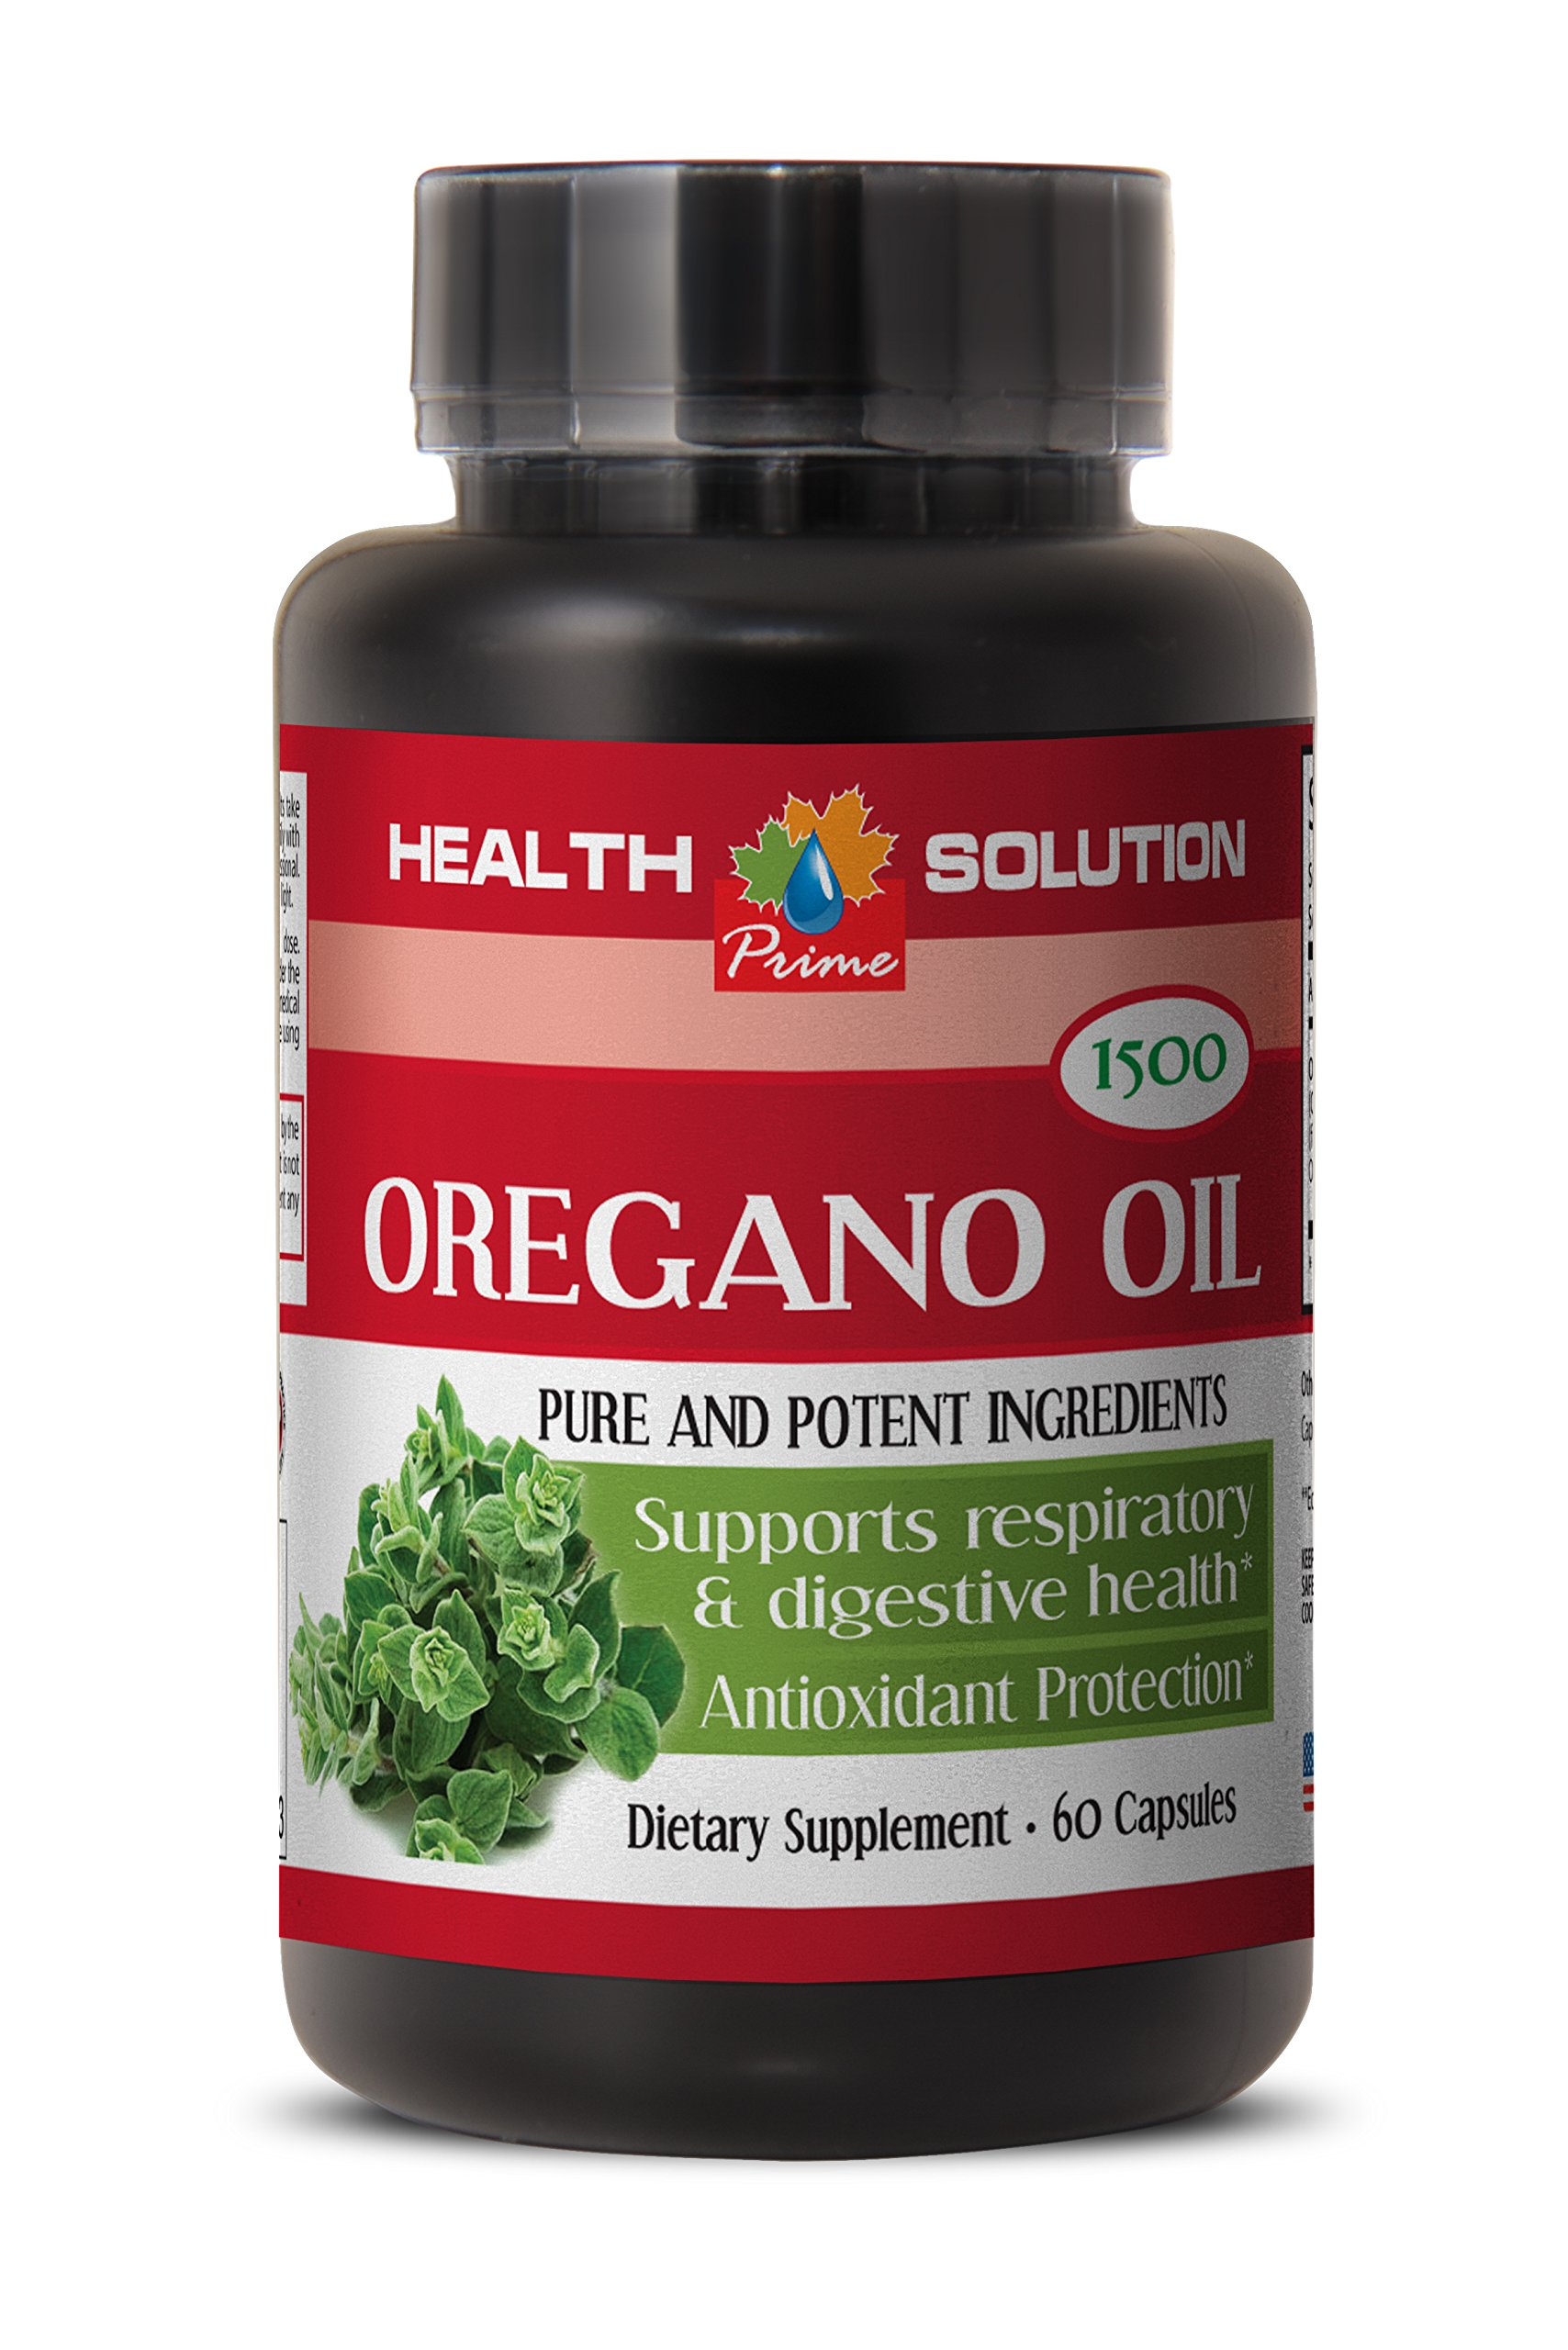 Immune system booster for women - OREGANO OIL EXTRACT (PURE AND POTENT INGREDIENTS) - Mediterranean oregano oil capsules - 1 Bottle 60 Capsules